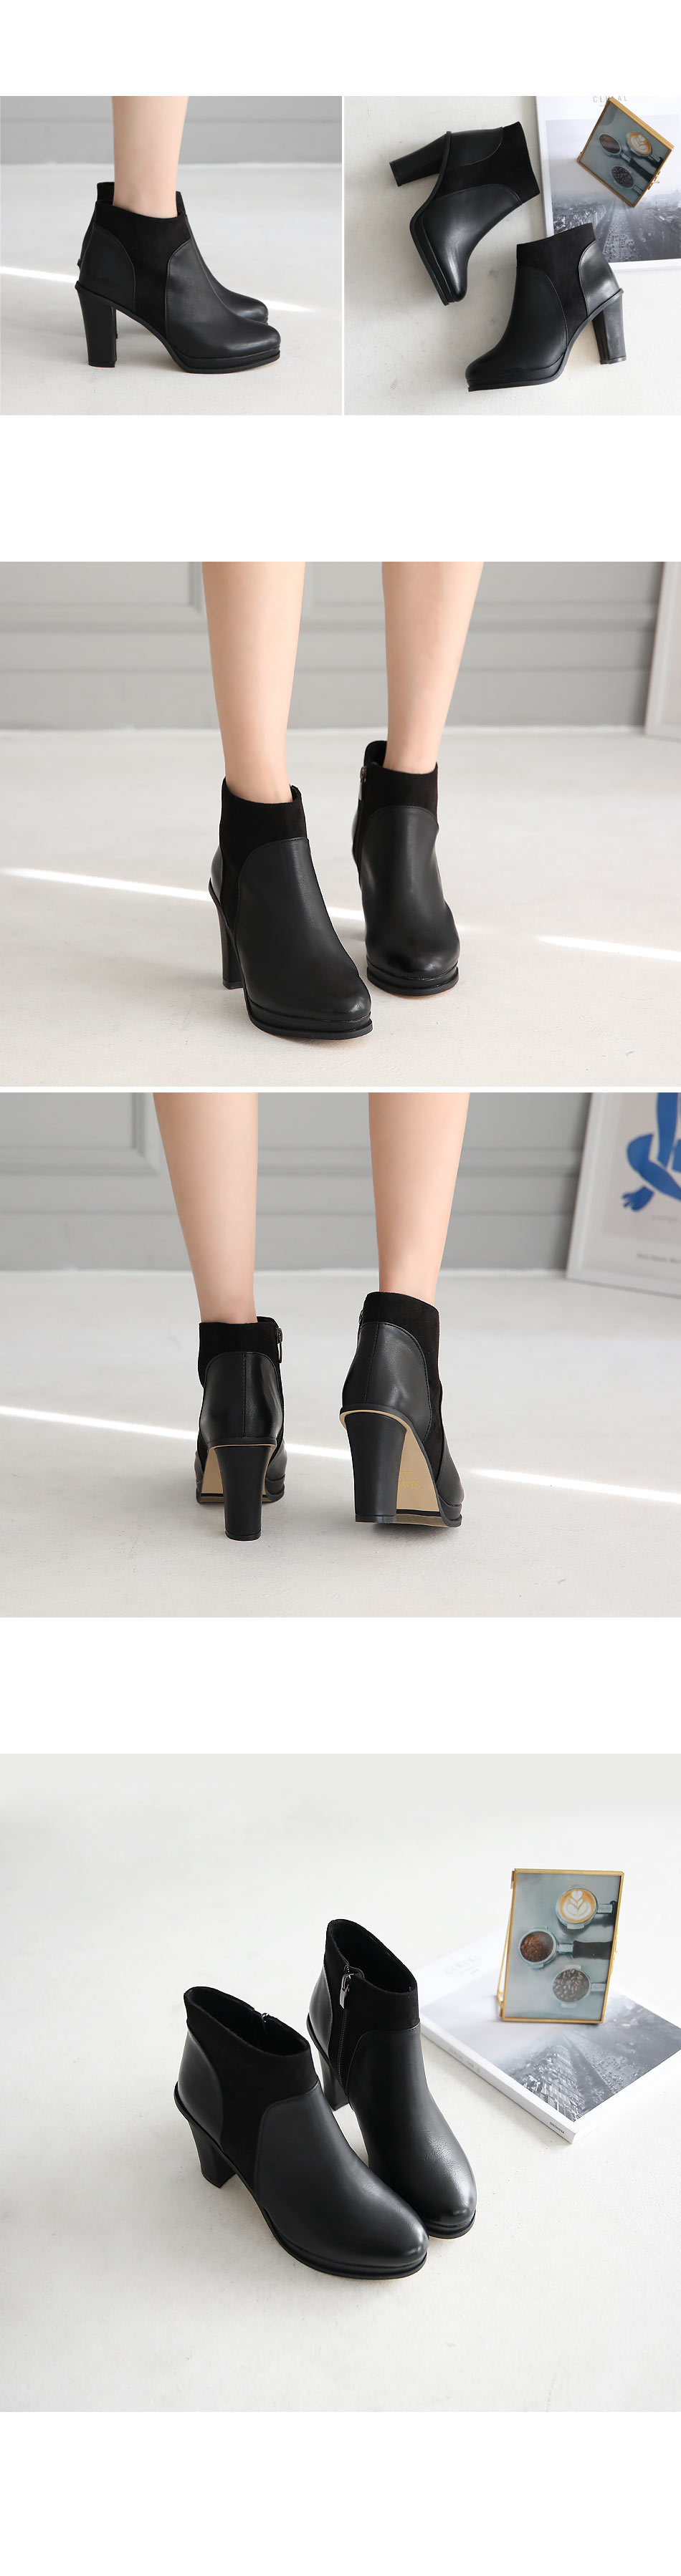 Leeven Ankle Boots 9cm